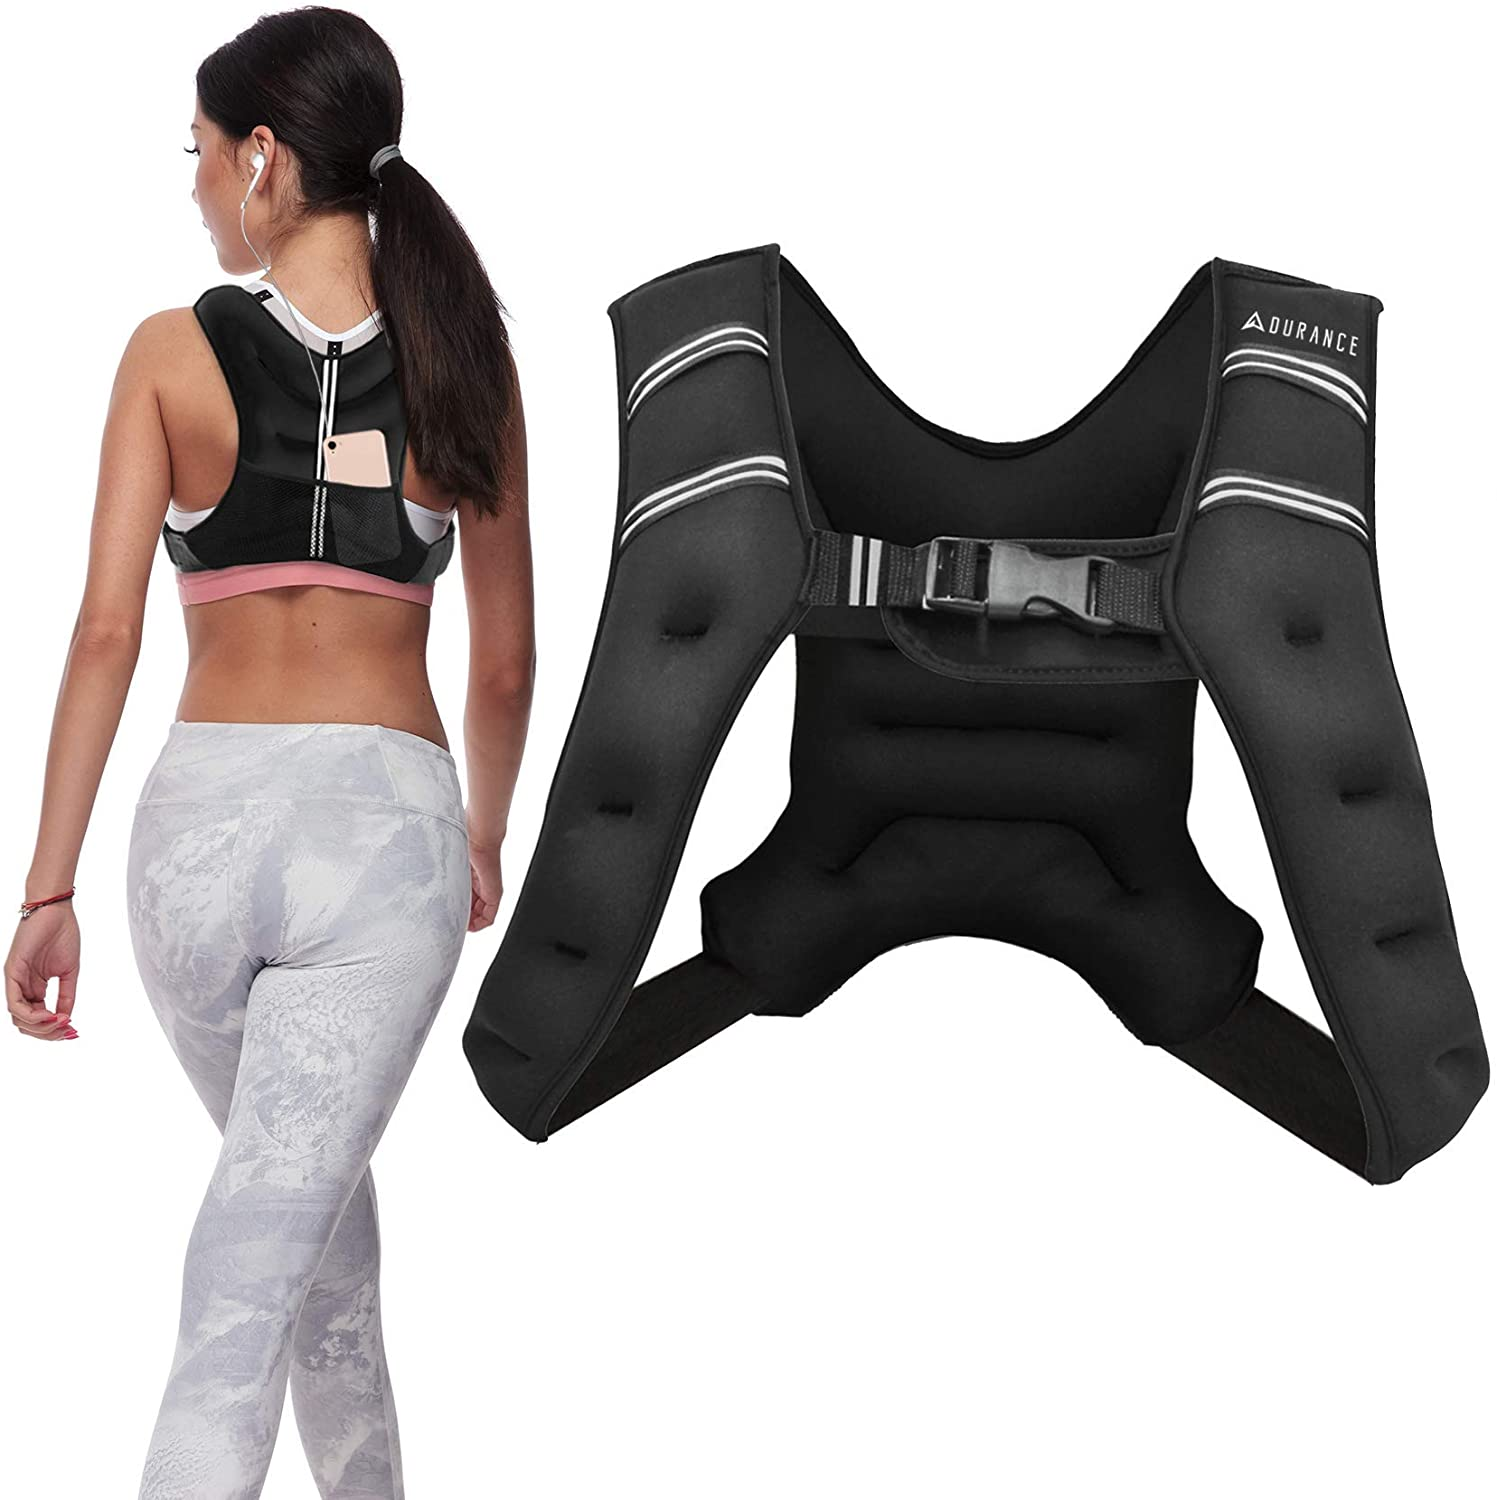 Adurance Weighted Vest